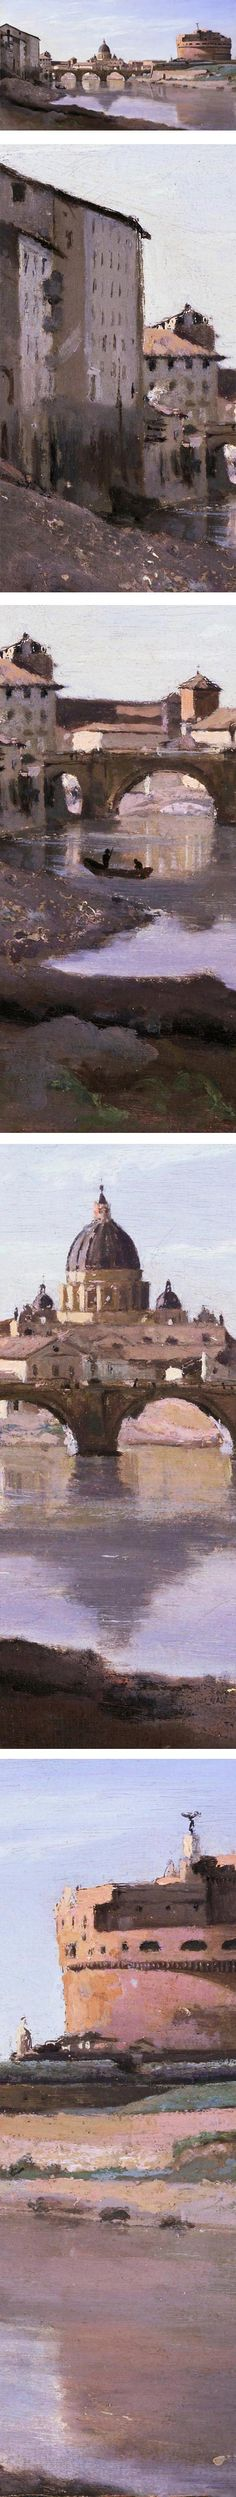 Eye Candy for Today: Corot painting of Castel Sant'Angelo